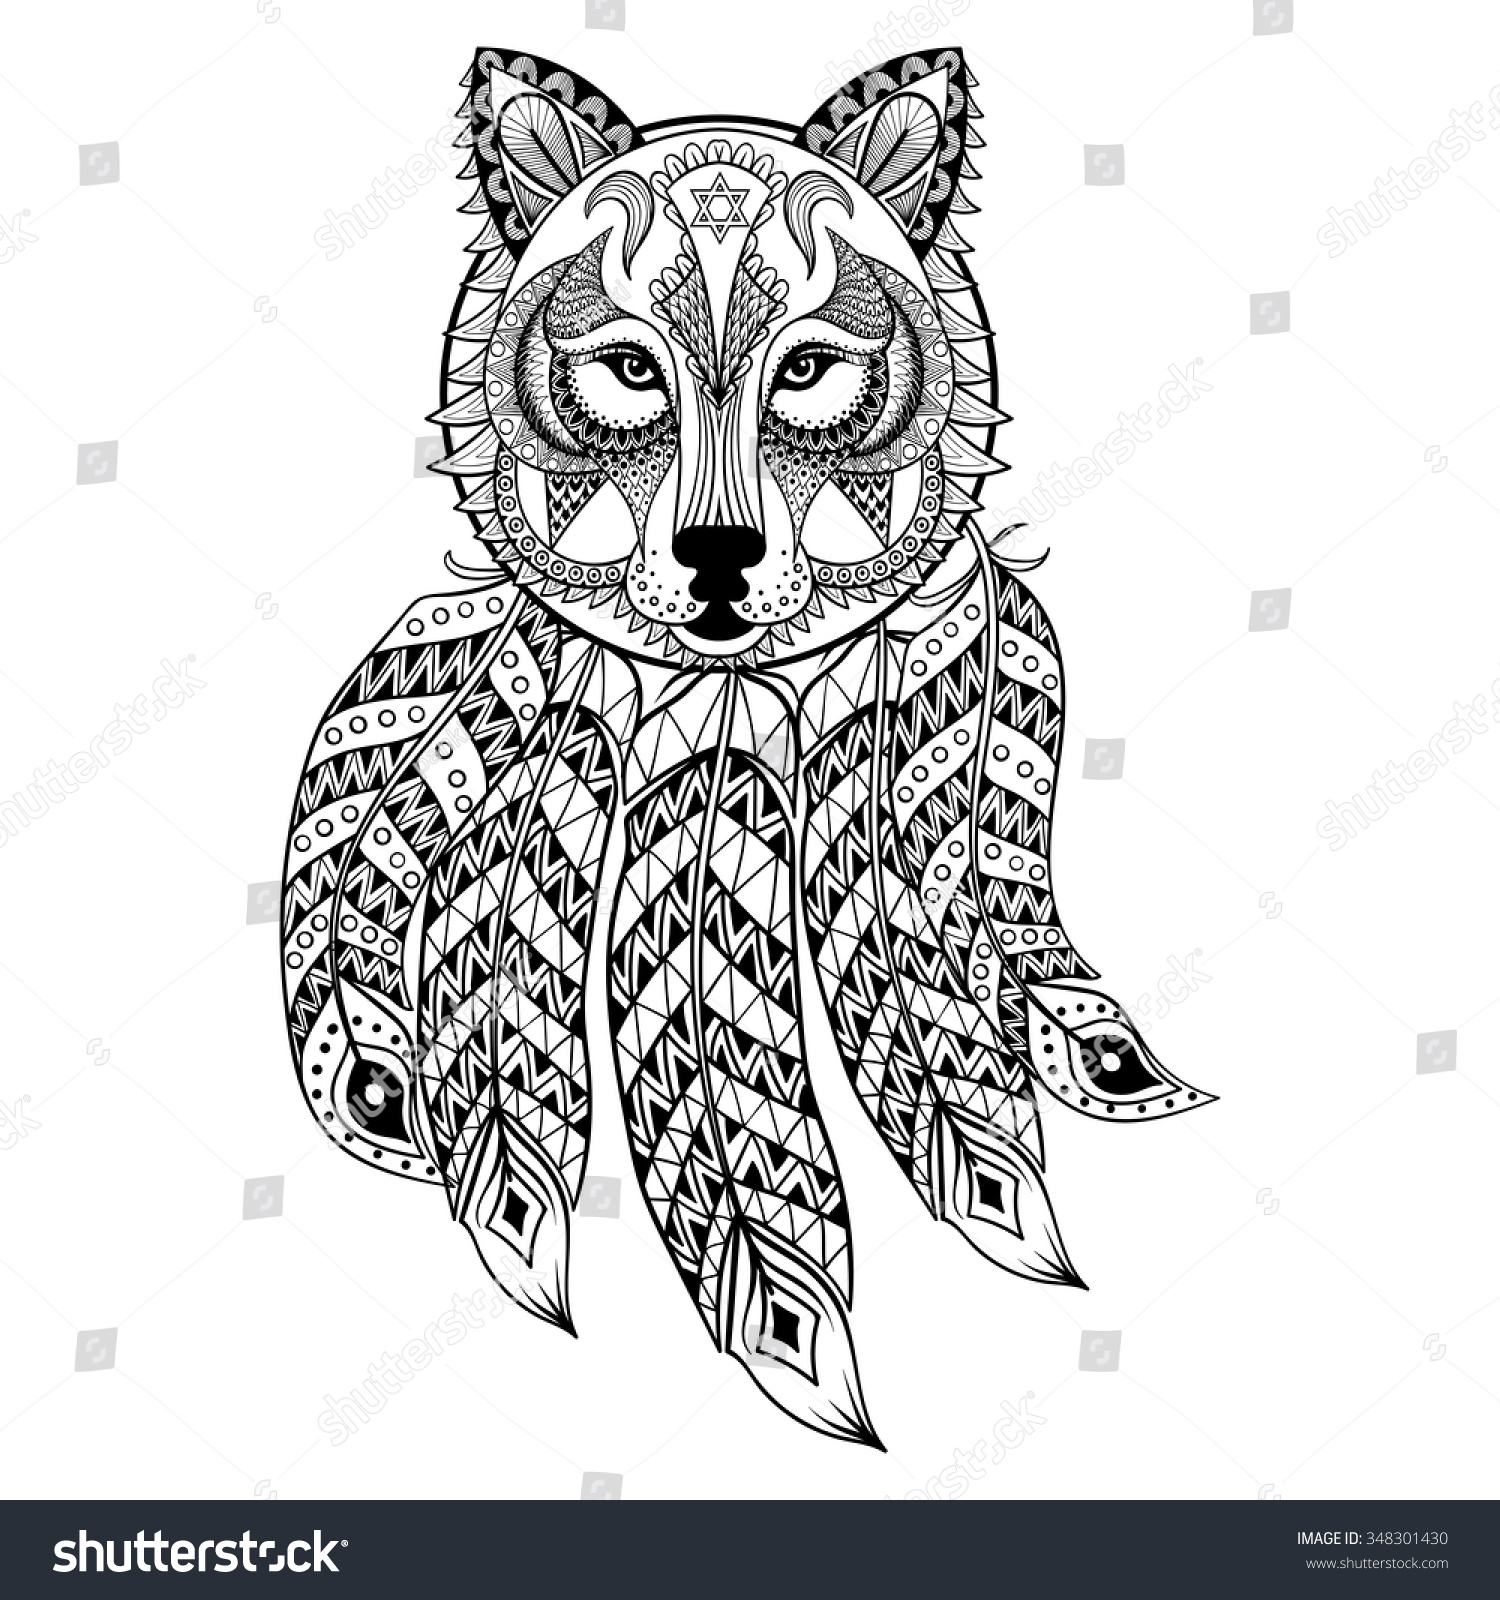 Coloring pages dream catchers - Stock Vector Vector Ornamental Wolf With Dreamcatcher Ethnic